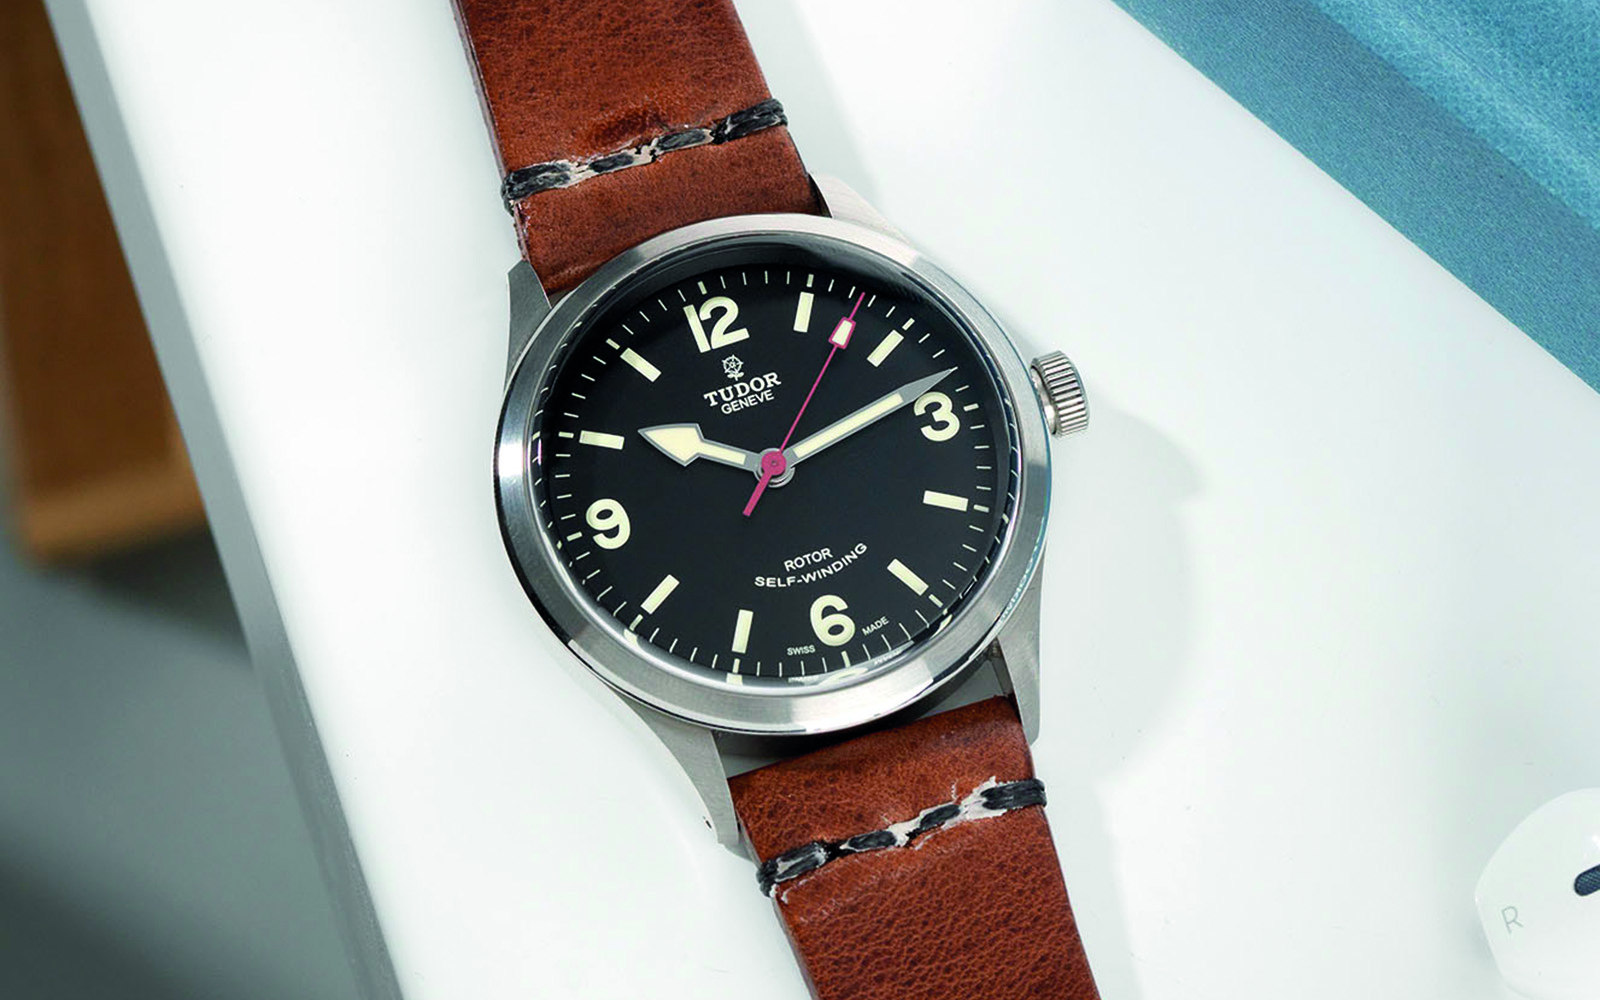 faebe61b850 We have curated a selection of our 22mm straps that we feel make this Ranger  Rock. Buckle strap or nato-style, the Ranger will have a flavour for you!